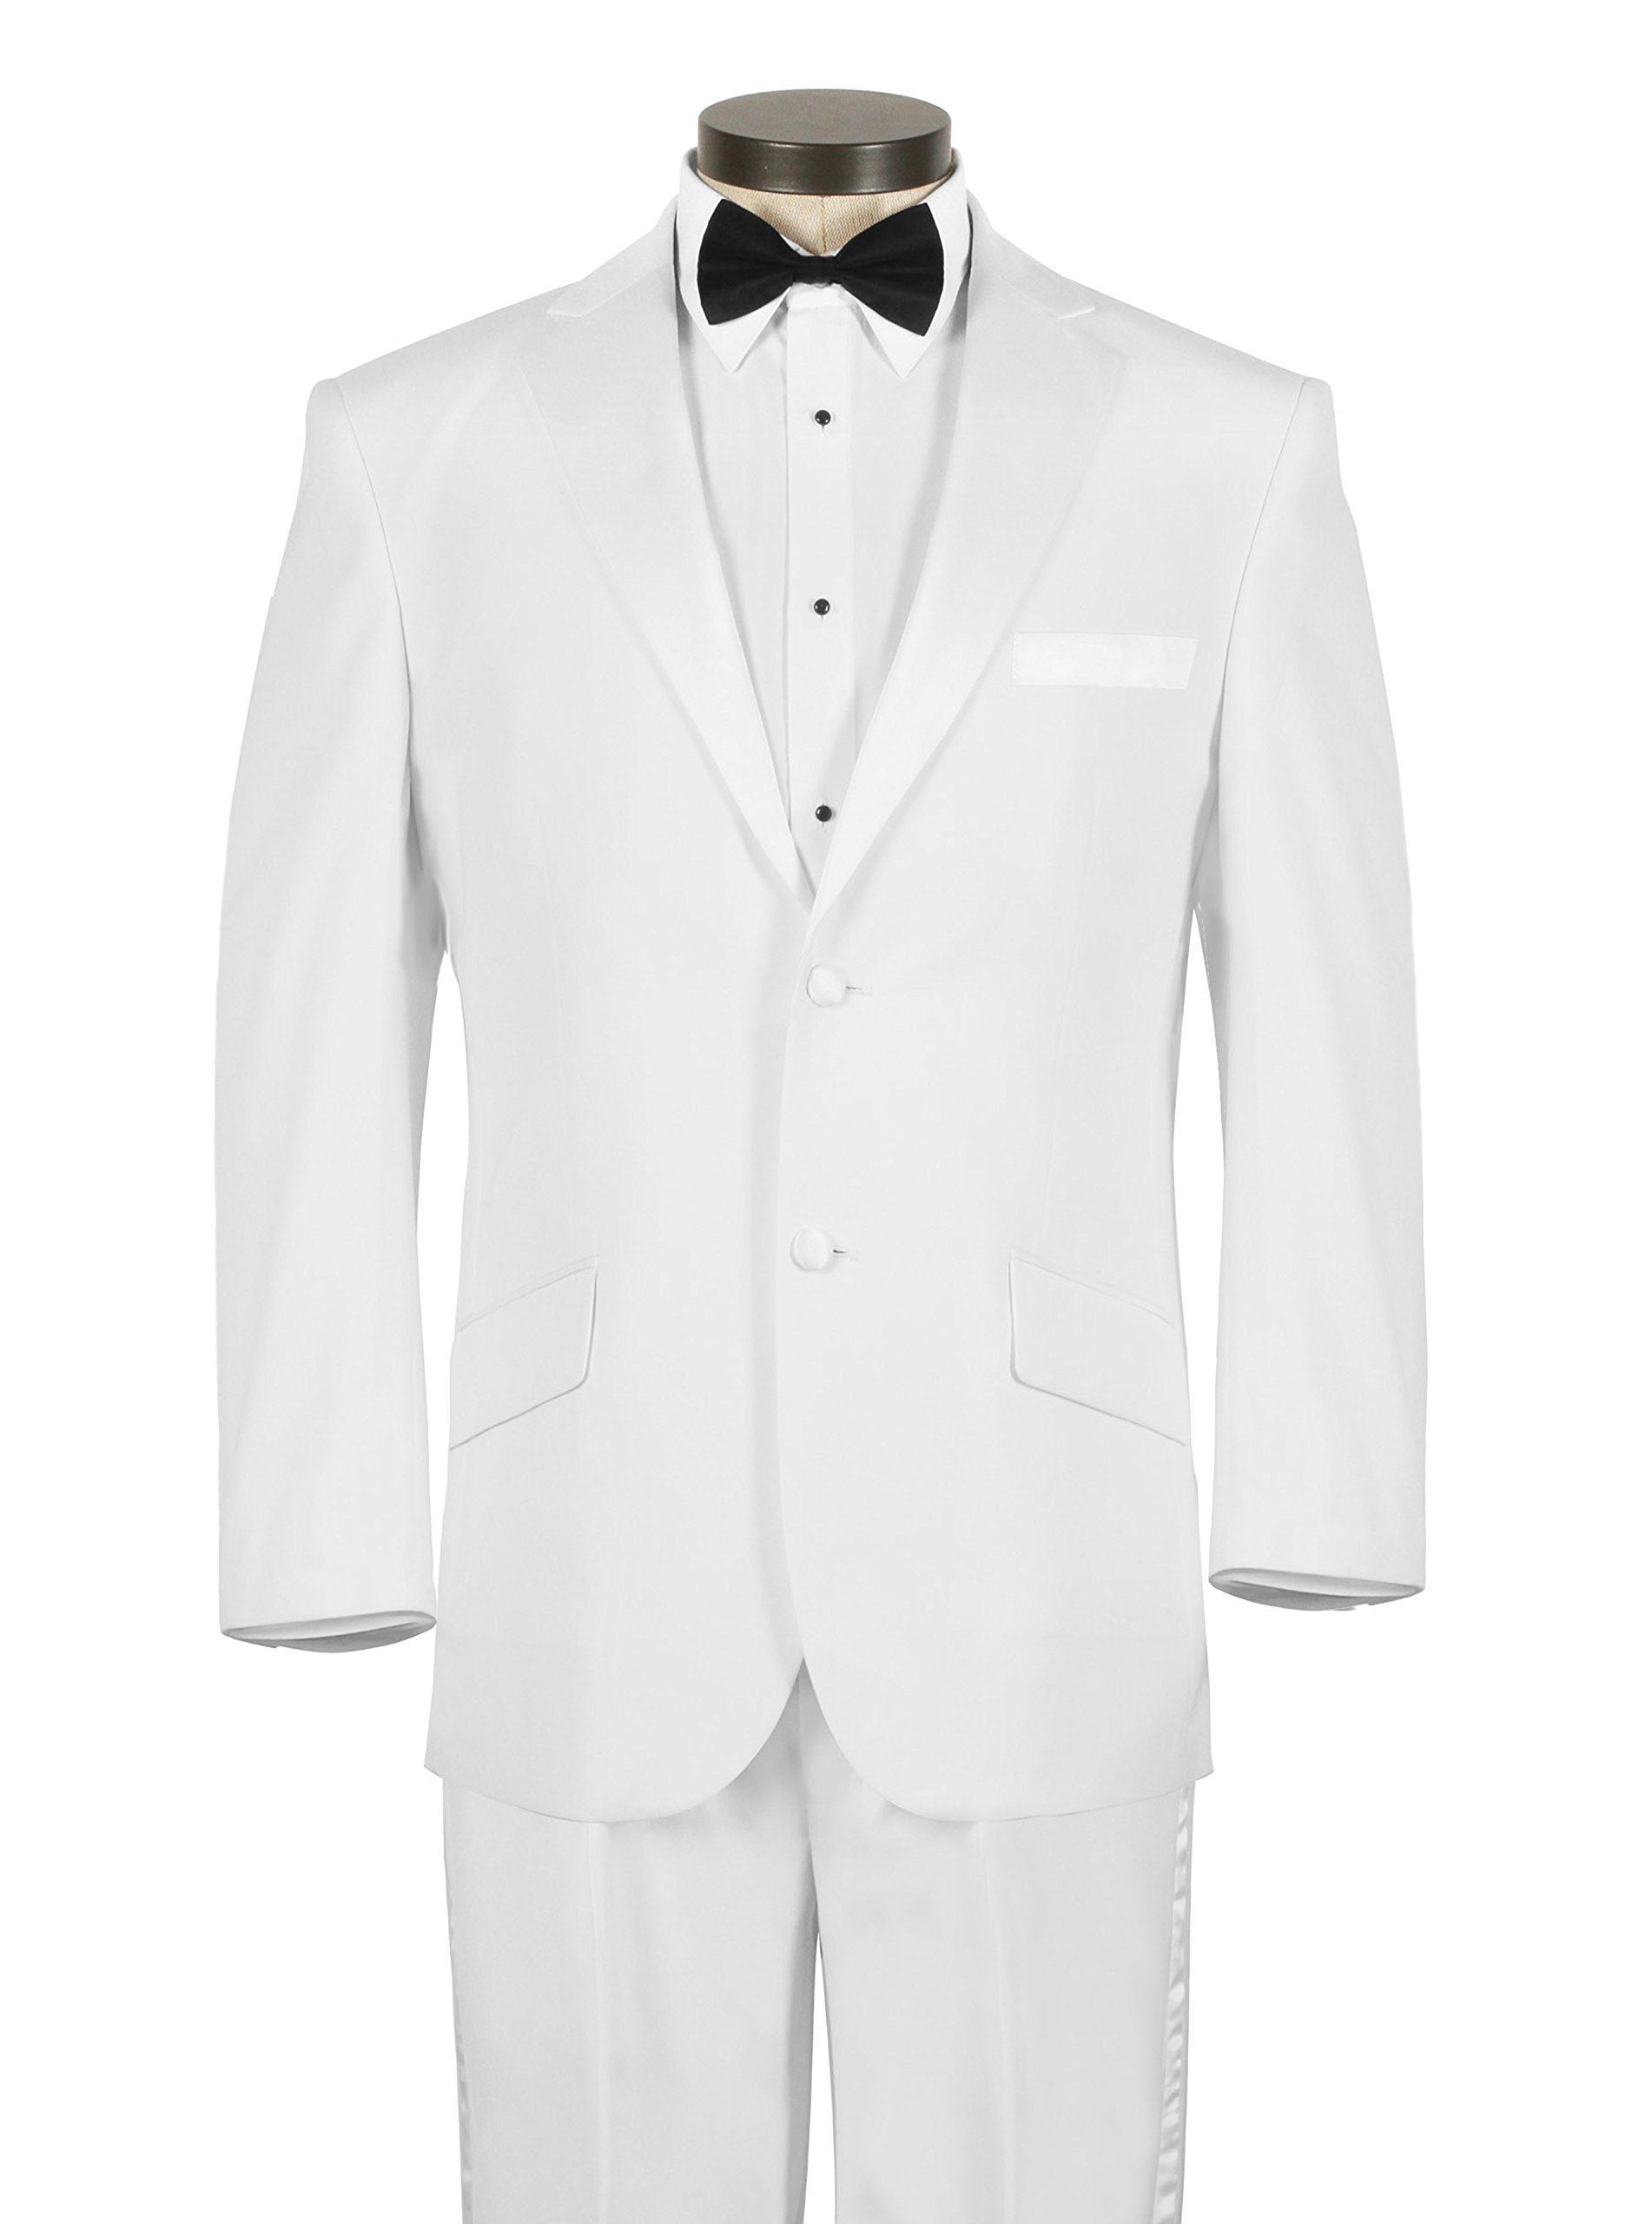 House of St. Benets Modern Fit Tuxedo - White, 36 Short